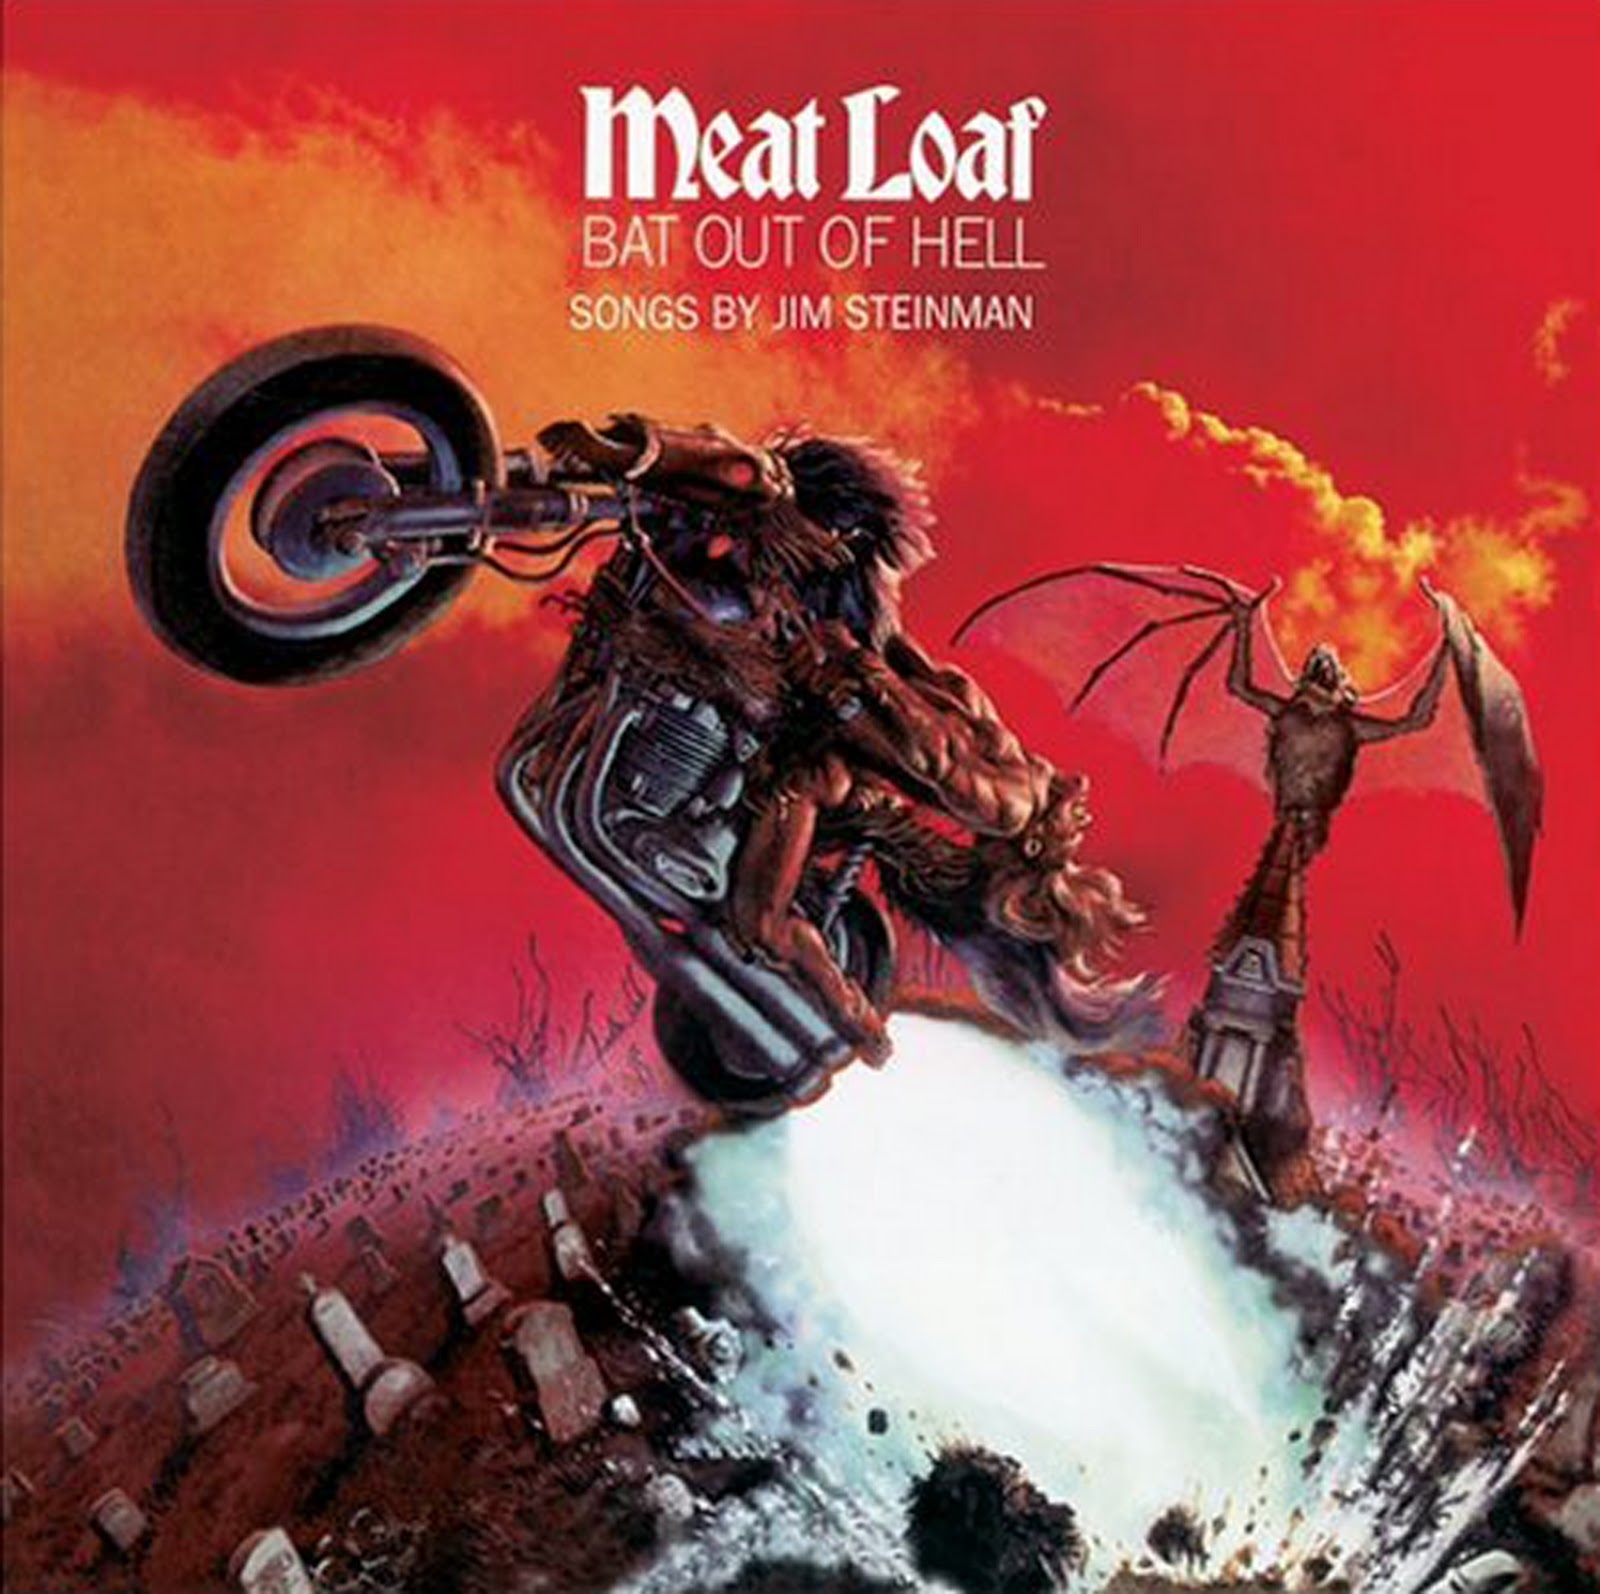 meat loaf bat out of hell The 100 Greatest Albums of All Time